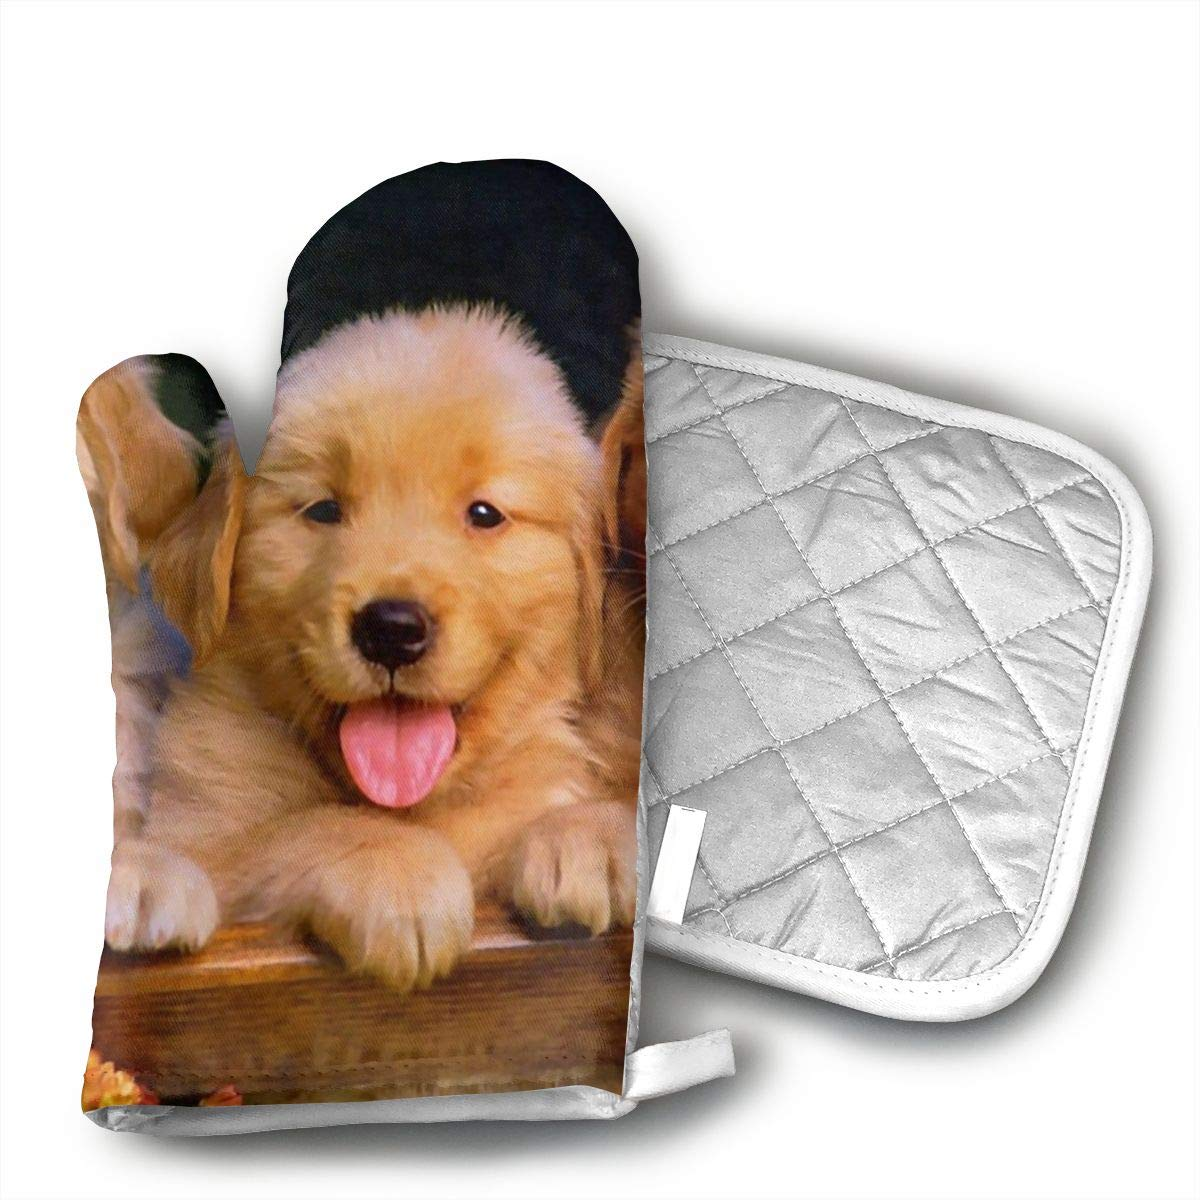 HGUIDHG Cute Puppies Golden Retriever Oven Mitts+Insulated Square Mat,Heat Resistant Kitchen Gloves Soft Insulated Deep Pockets, Non-Slip Handles